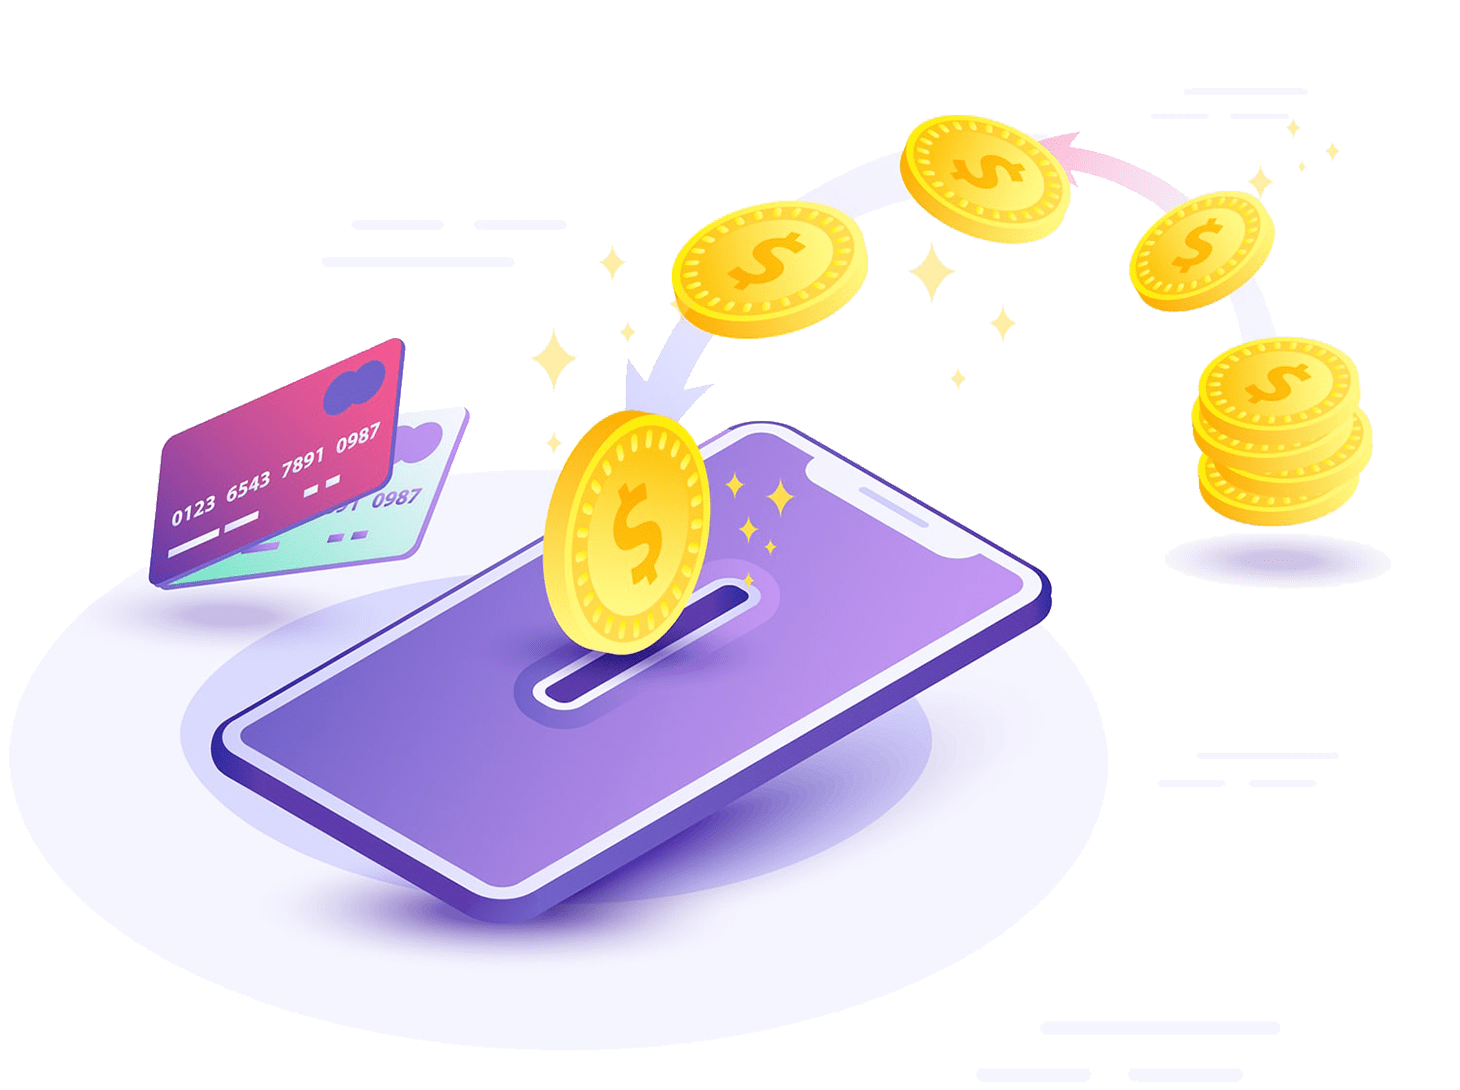 The main features of Money SMS